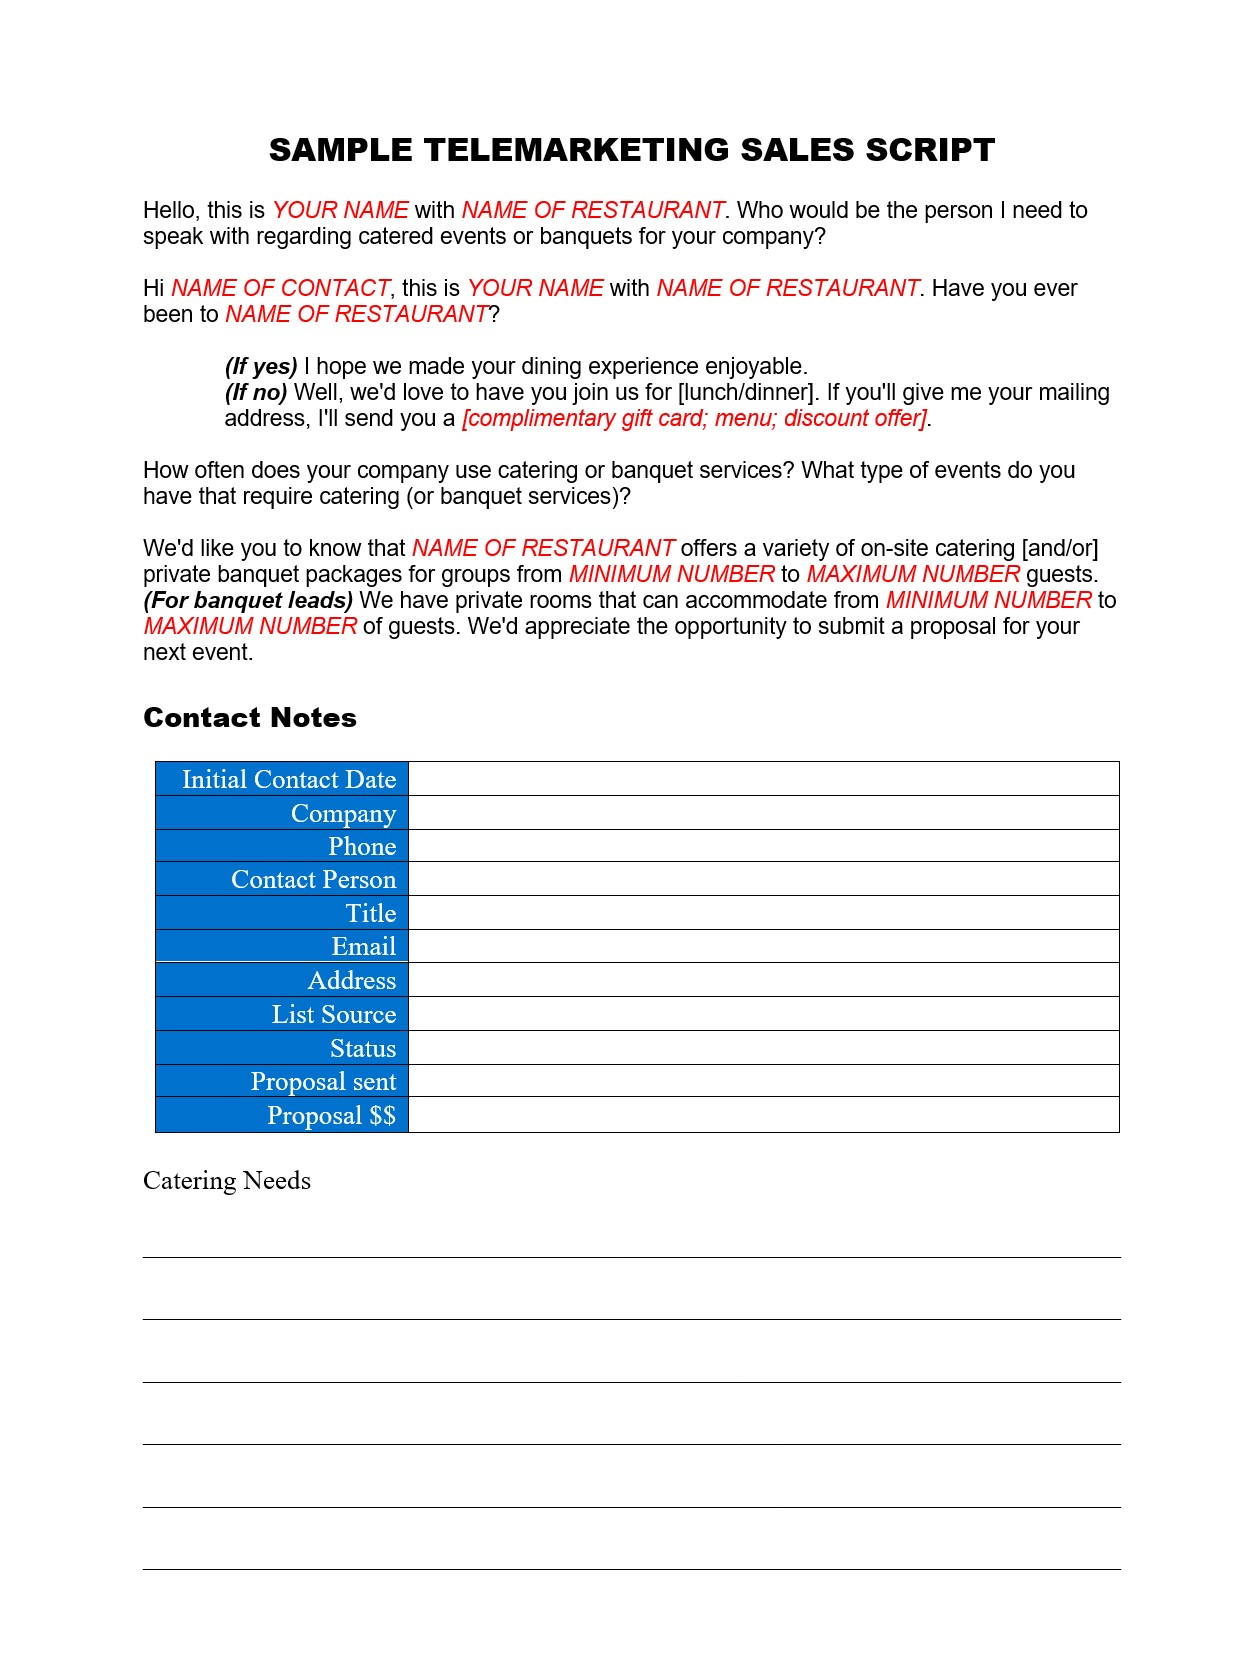 CateringBanquet Telemarketing Script